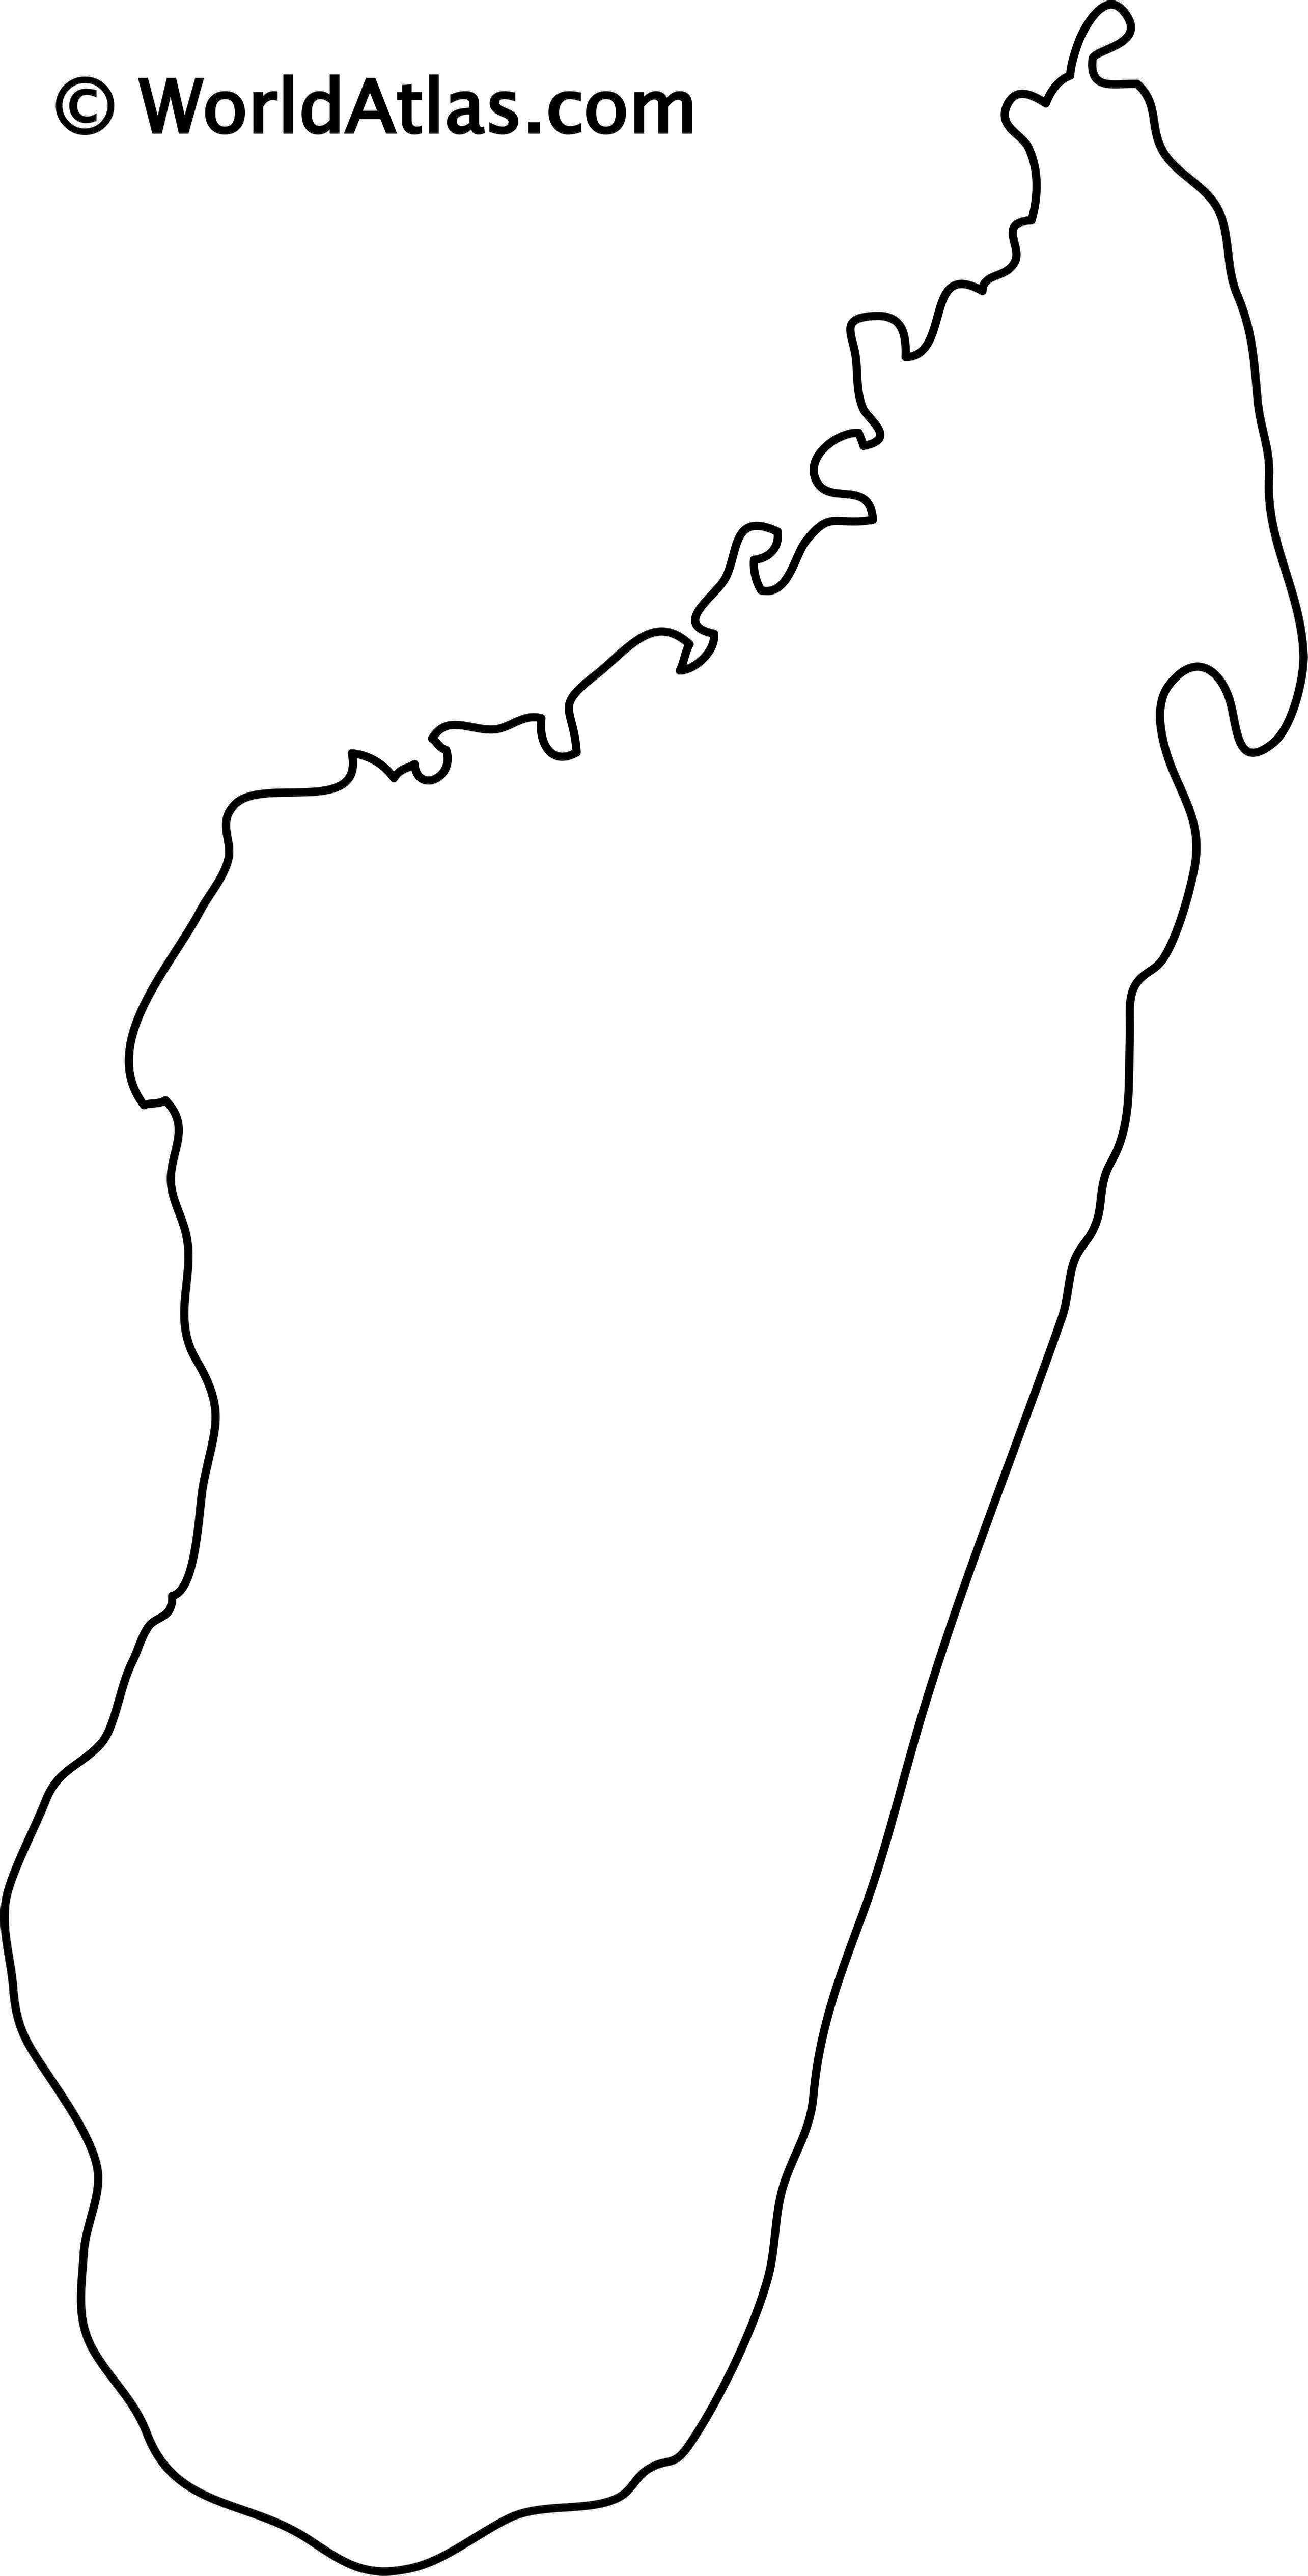 Blank Outline Map of Madagascar